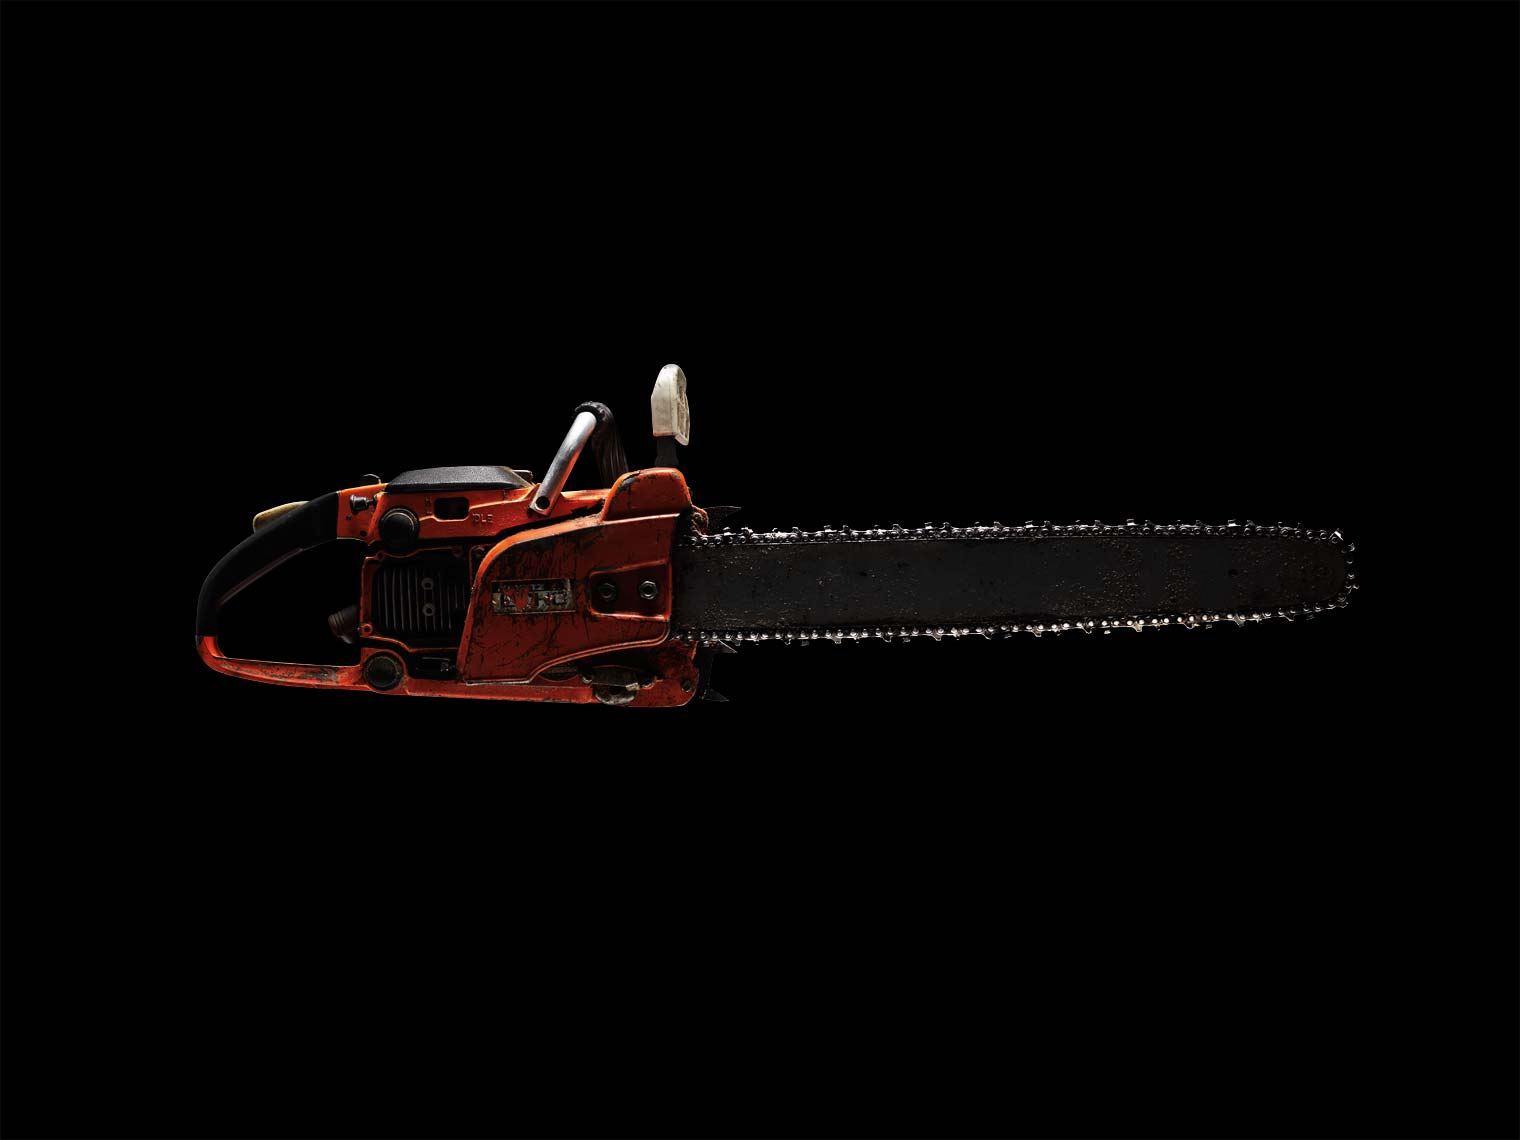 Chainsaw_Still_life